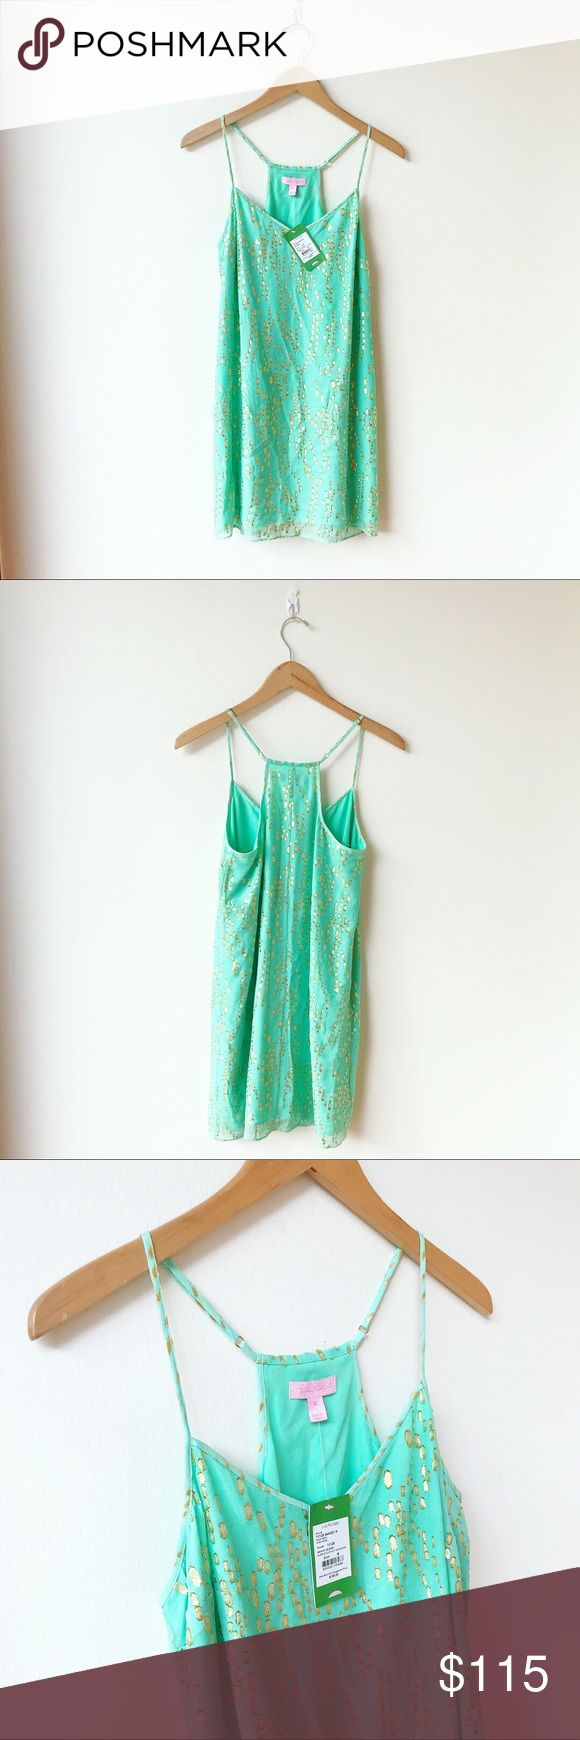 Lilly Pulitzer Green Mini Beach Glass Dress Kelly green mini dress with skinny, adjustable straps, coming to a slight racerback. Gold shimmer flecks throughout. Fully lined. Beach Glass style. NWT for $198! Lilly Pulitzer Dresses Mini